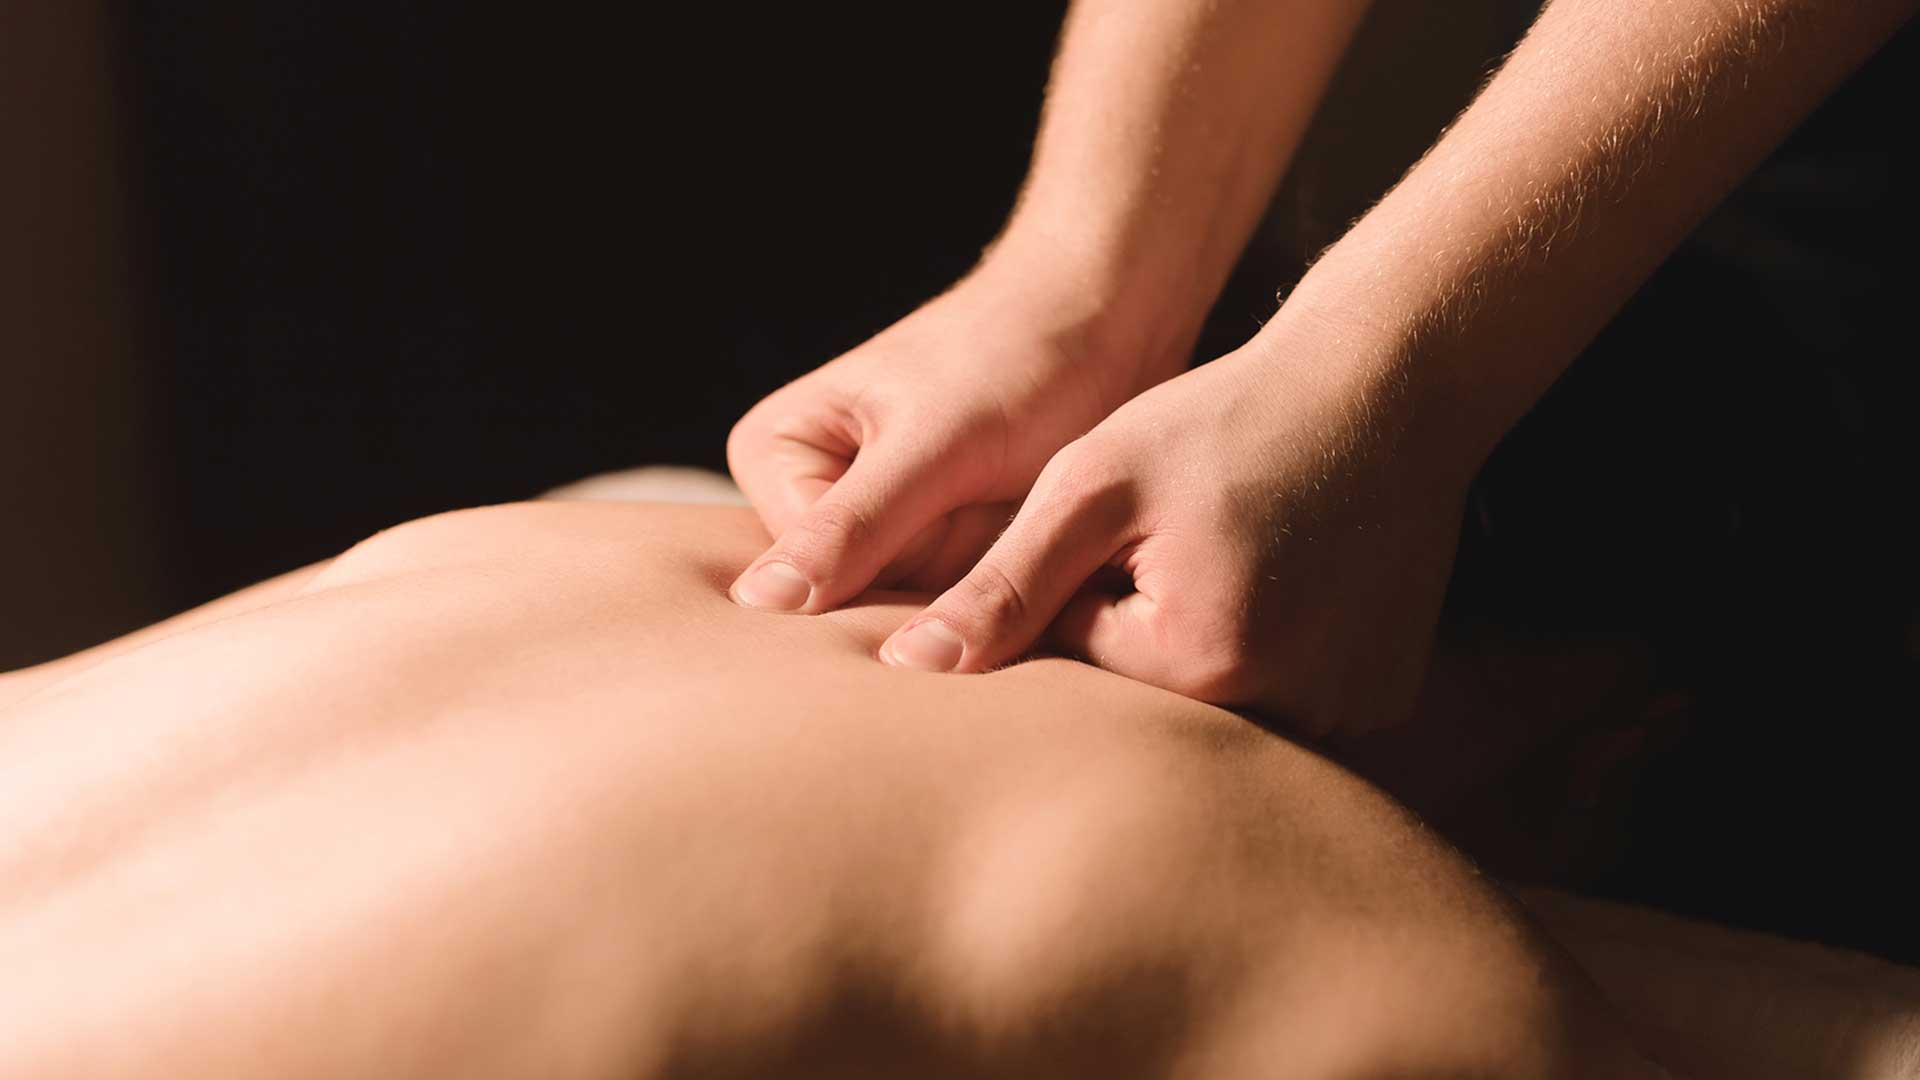 Carthage and surrounding areas Massage Techniques